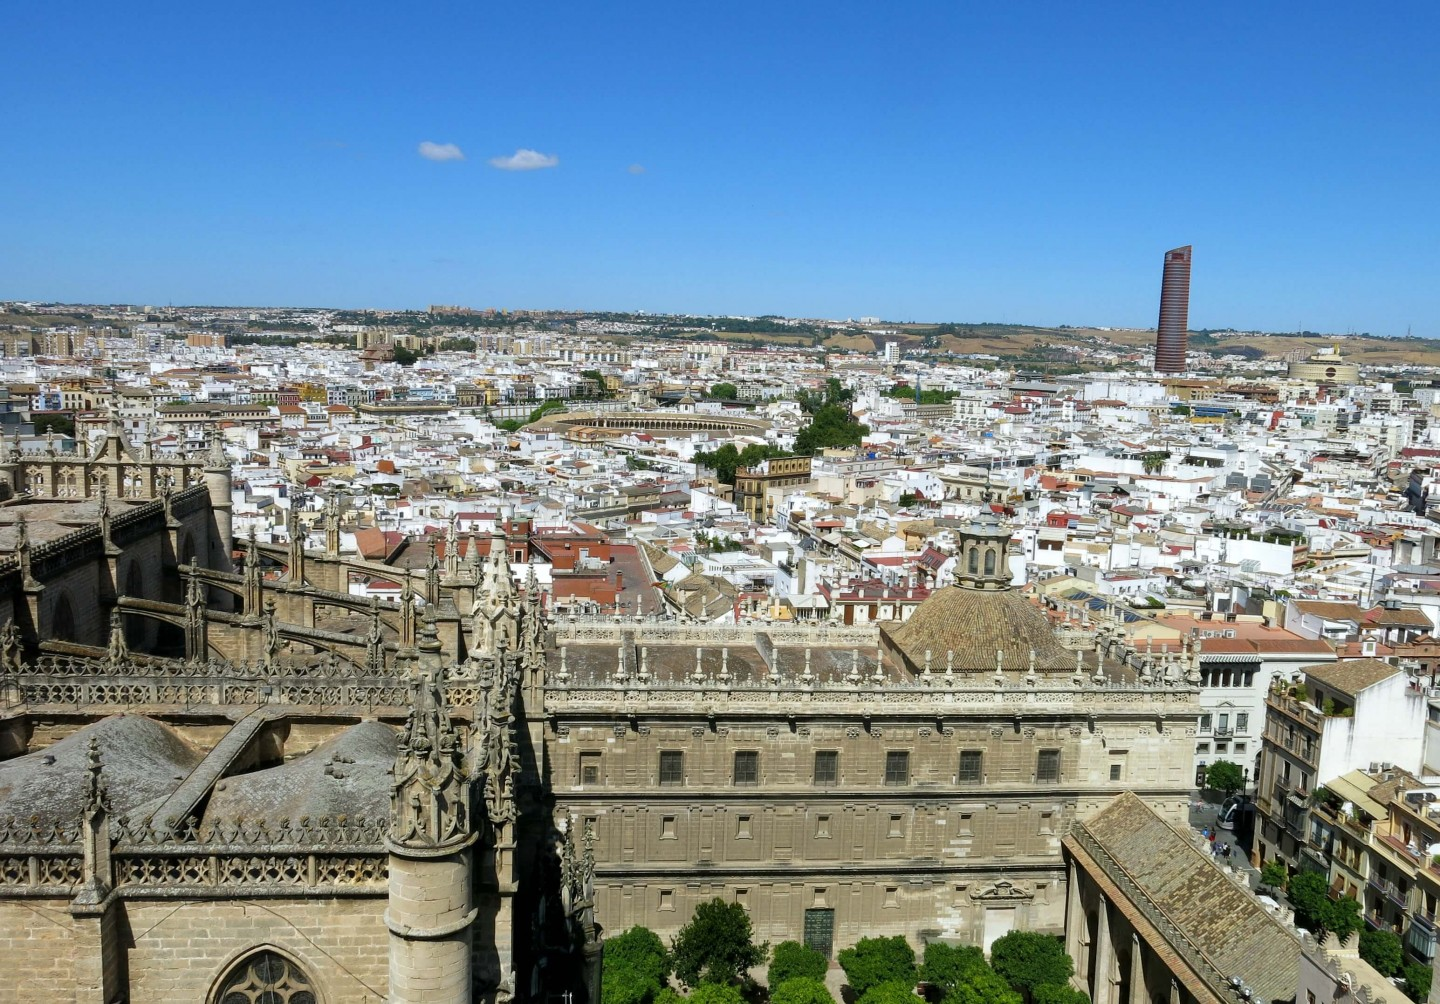 Views from the top of The Giralda, part of Seville Cathedral. Find out how you can beat the queues over on the blog.